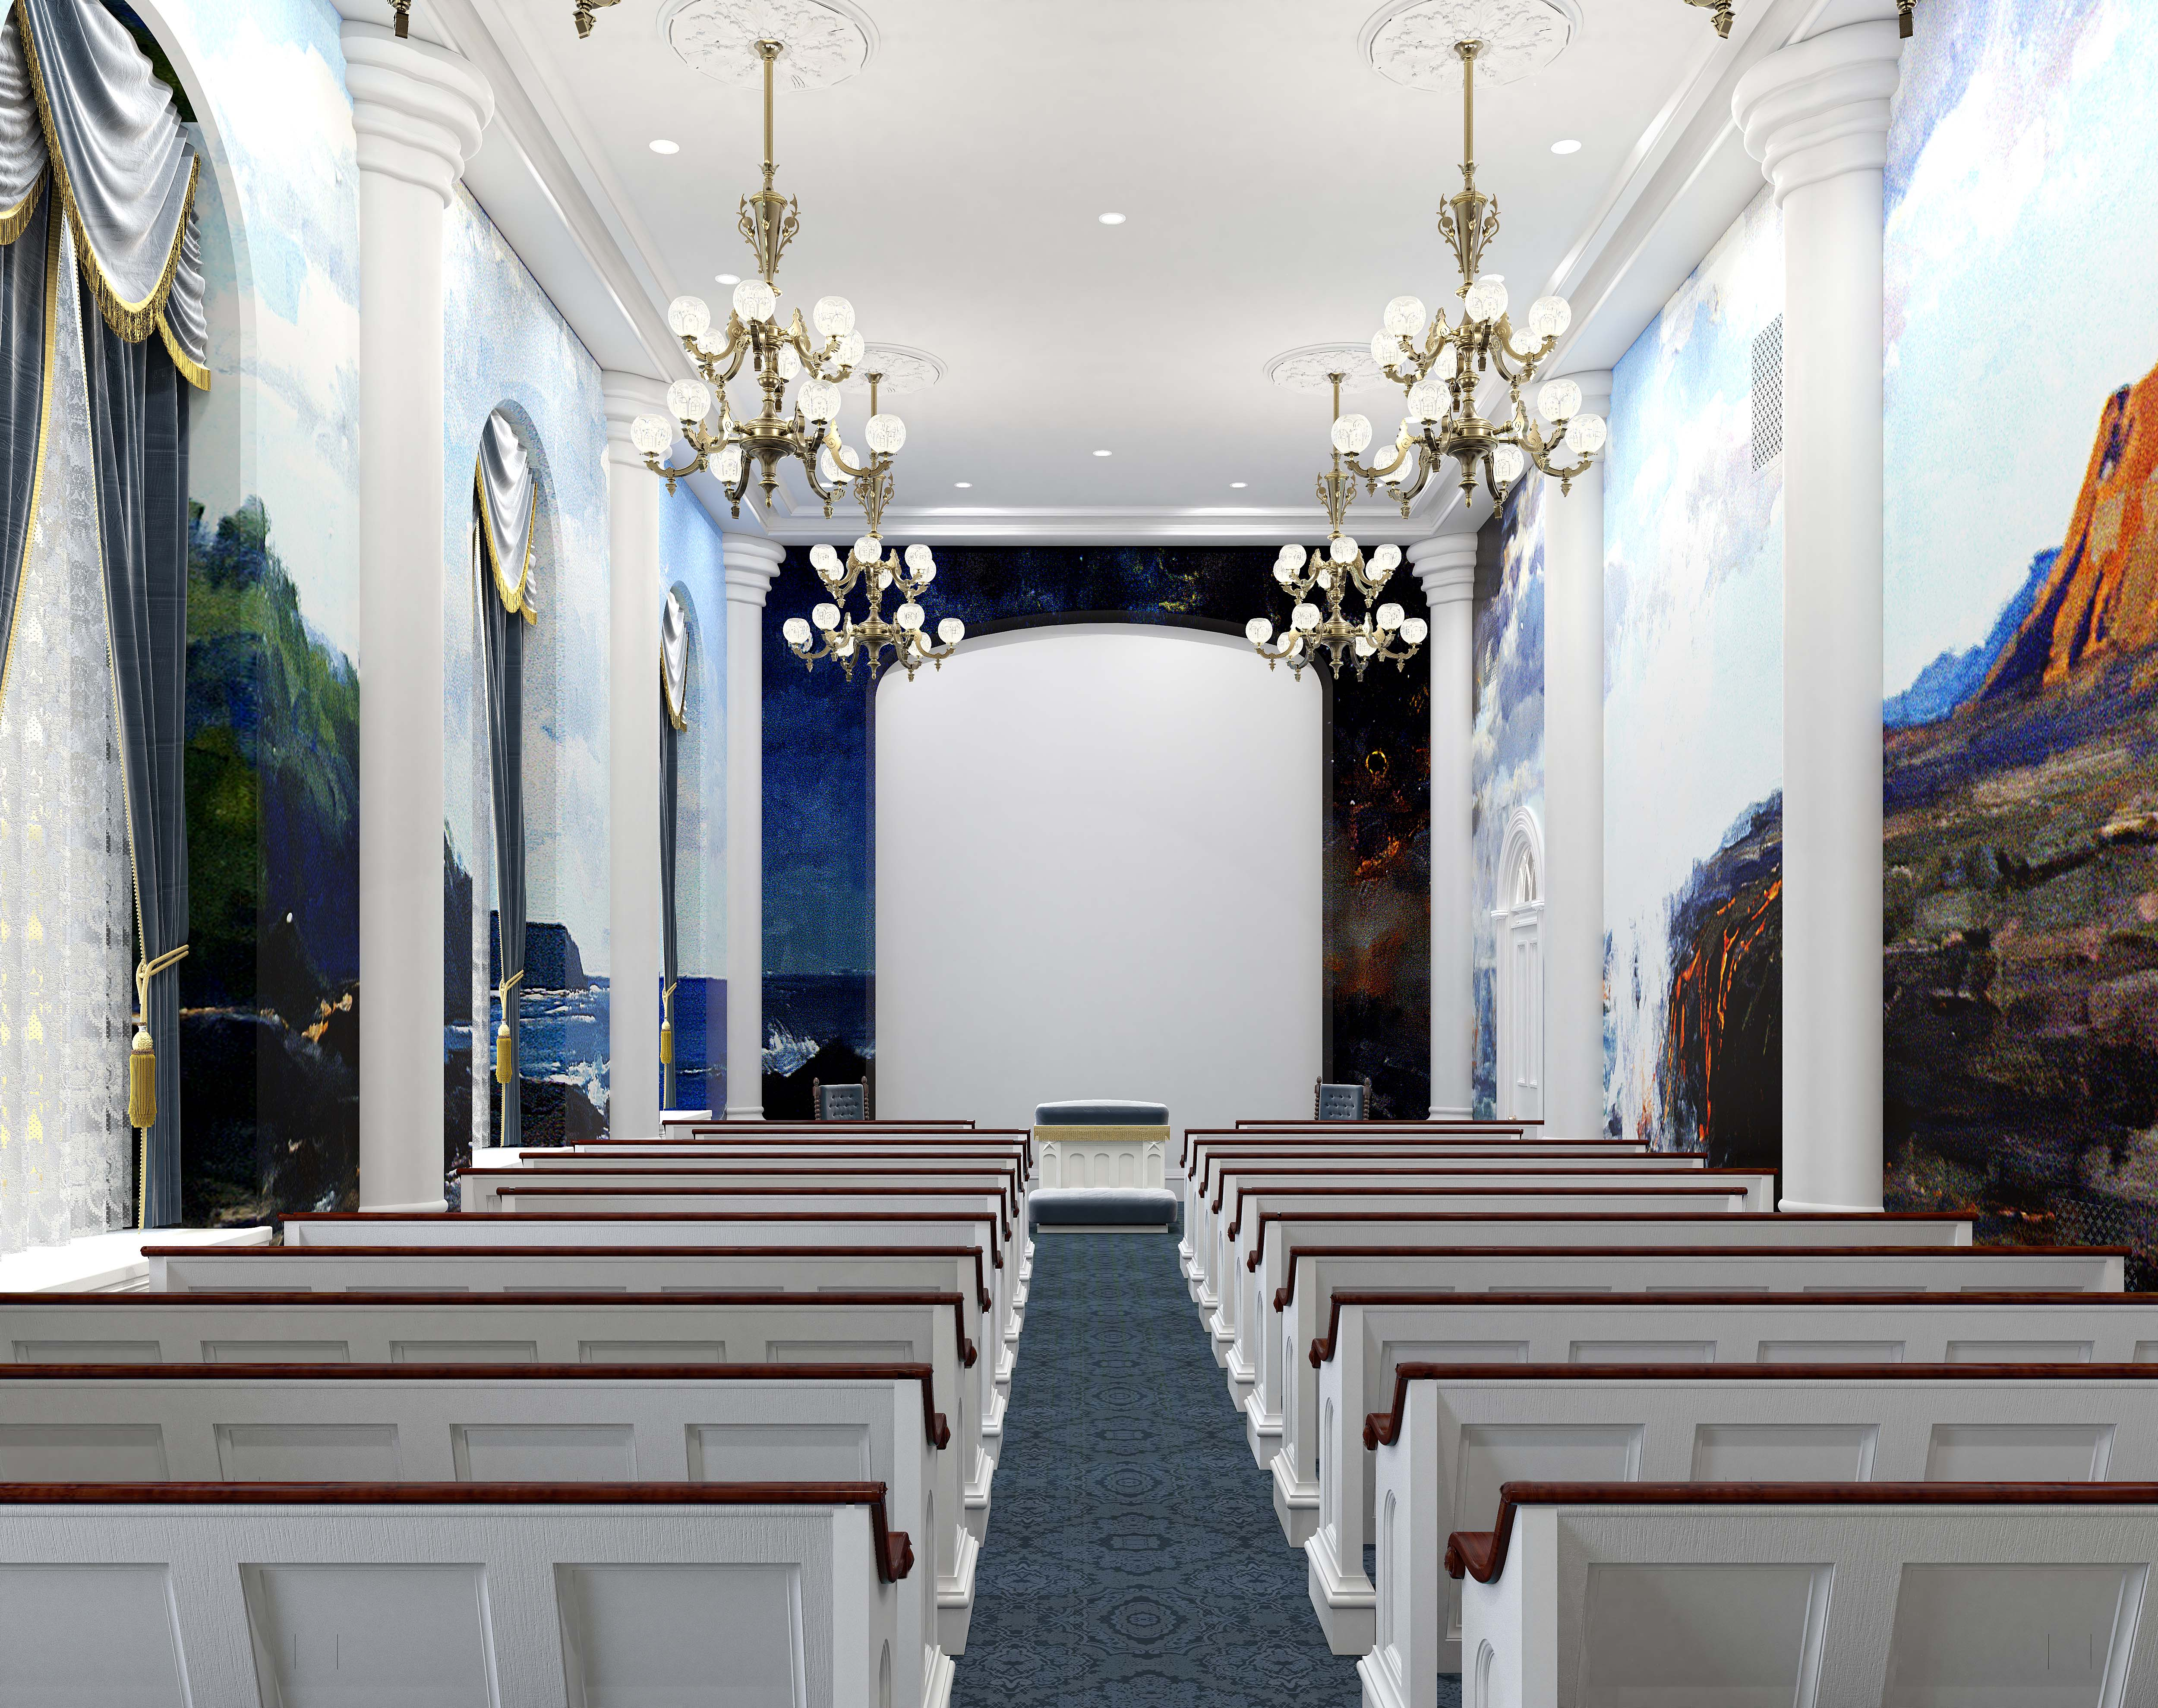 A rendering an instruction room in the St. George Utah Temple. The temple will close Nov. 4 for extensive renovations.